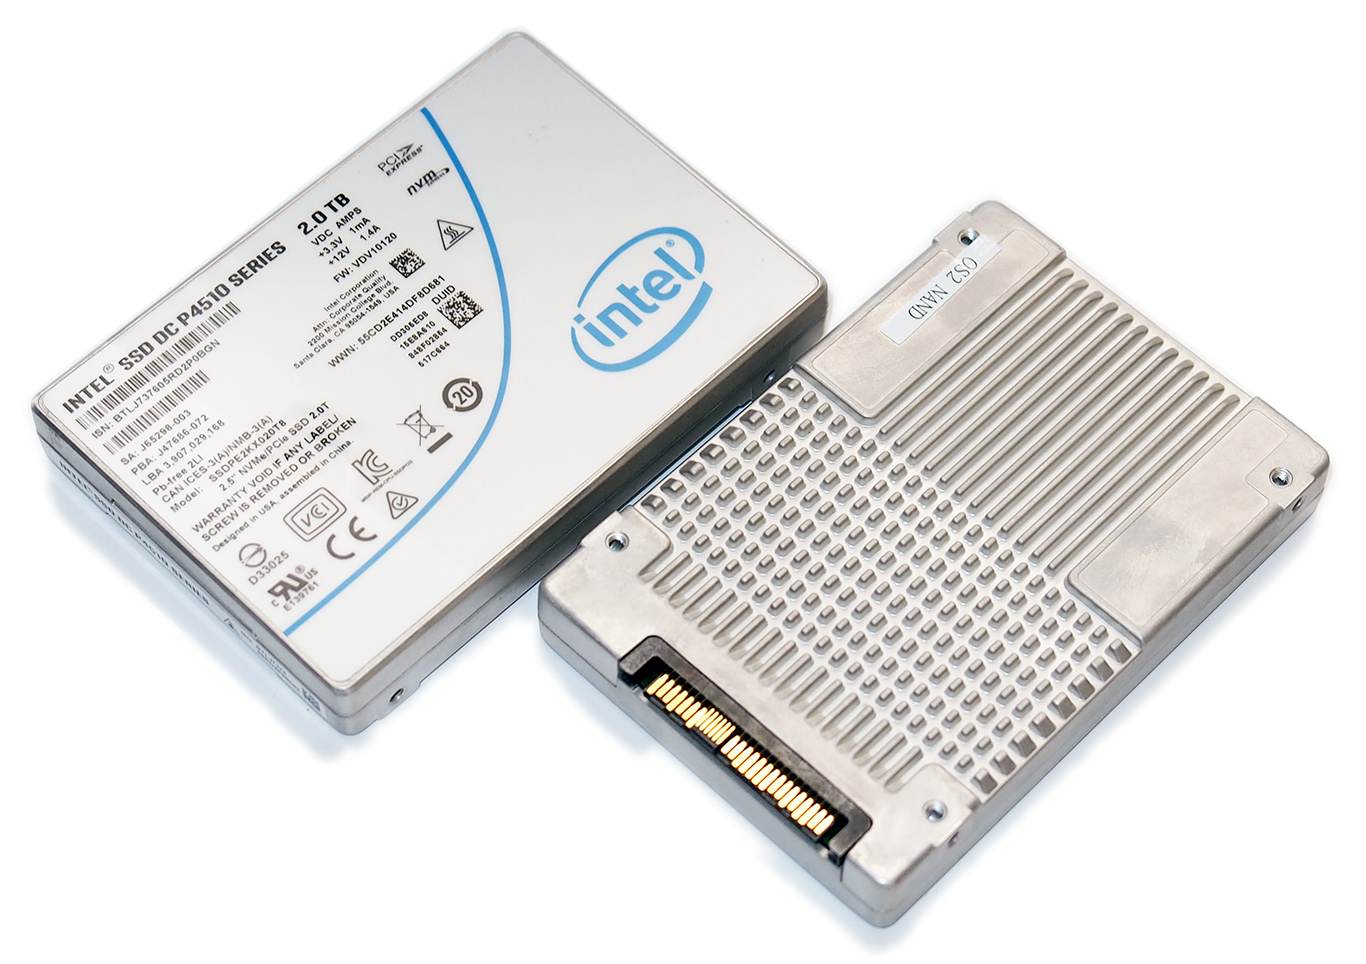 big_intel-ssd-4510-drives.jpg